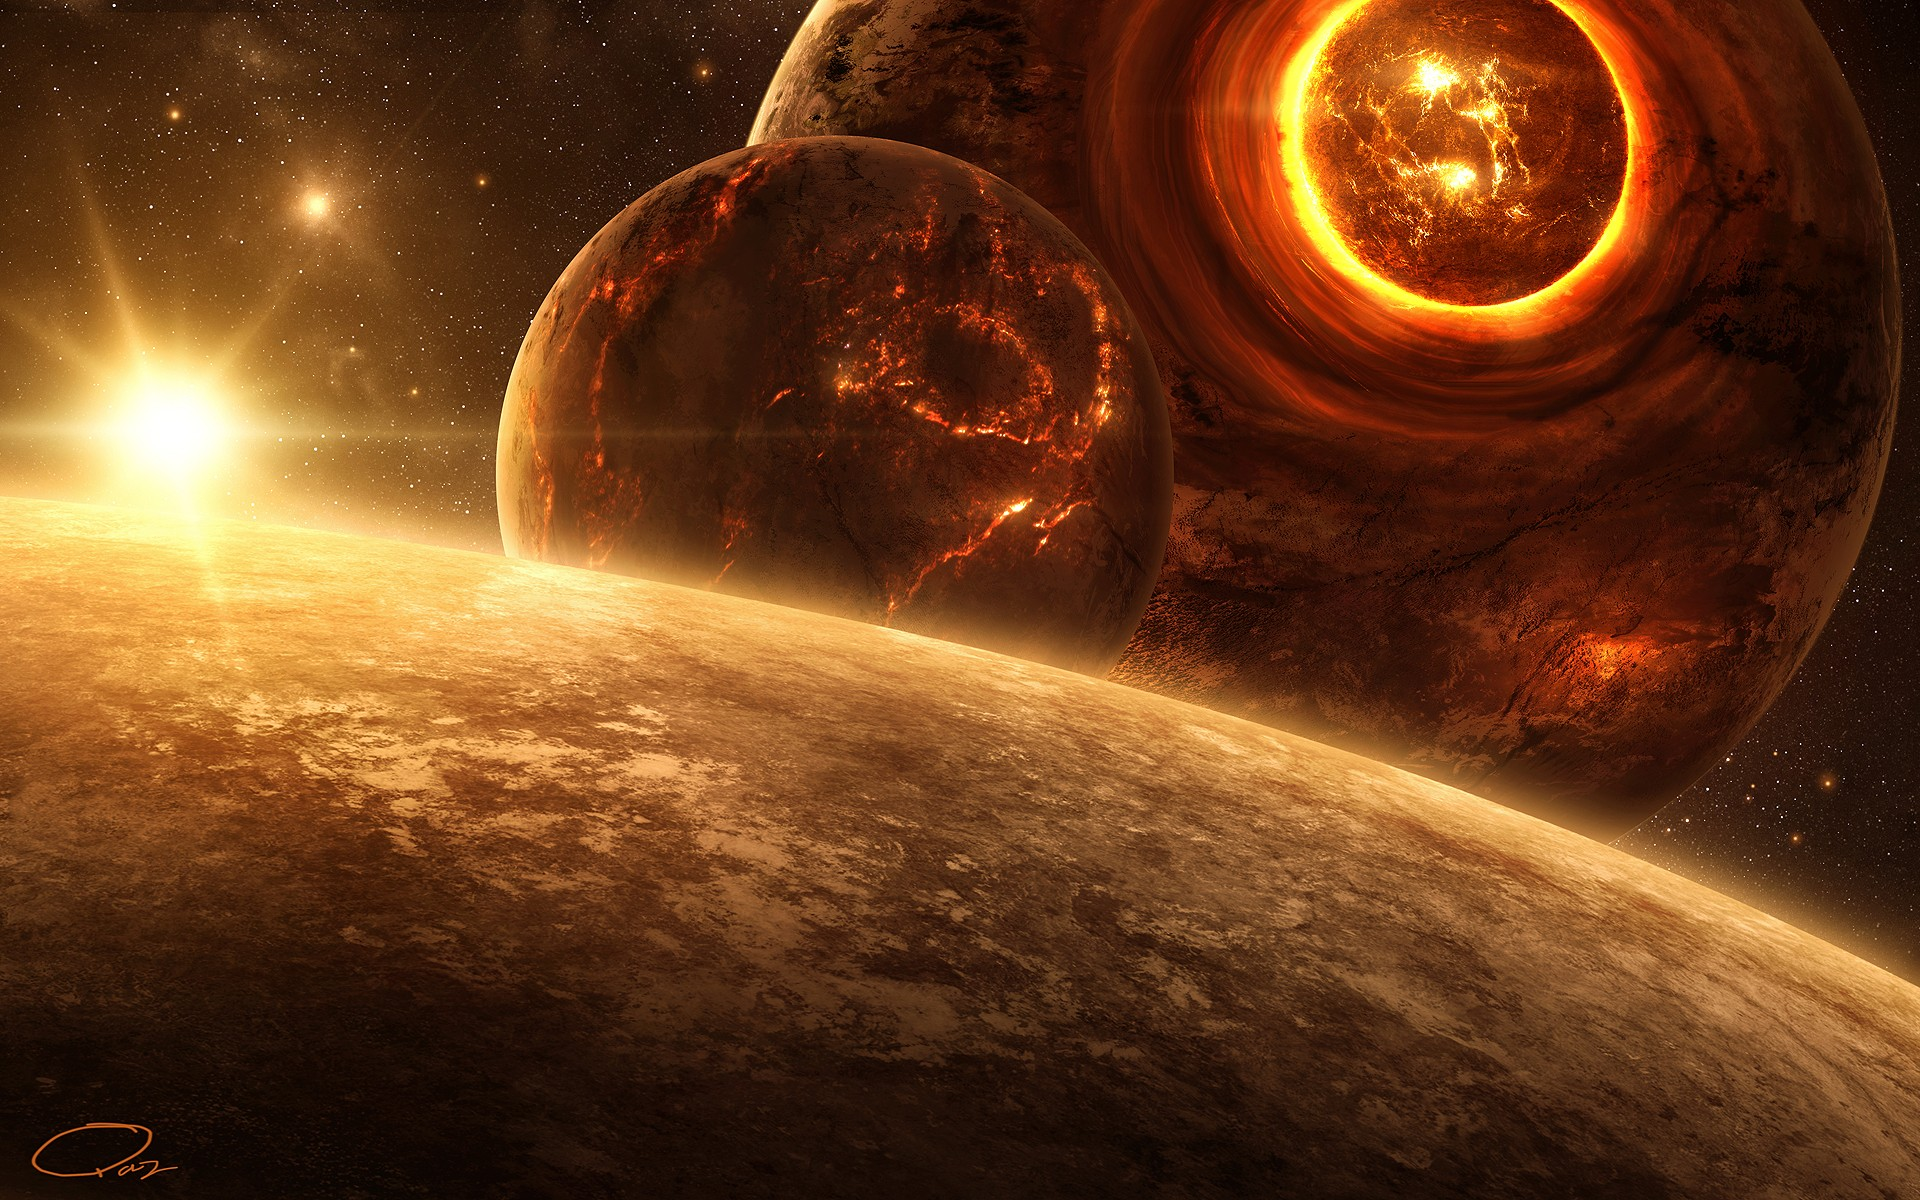 Death outer space planets digital art science fiction QAuZ ...